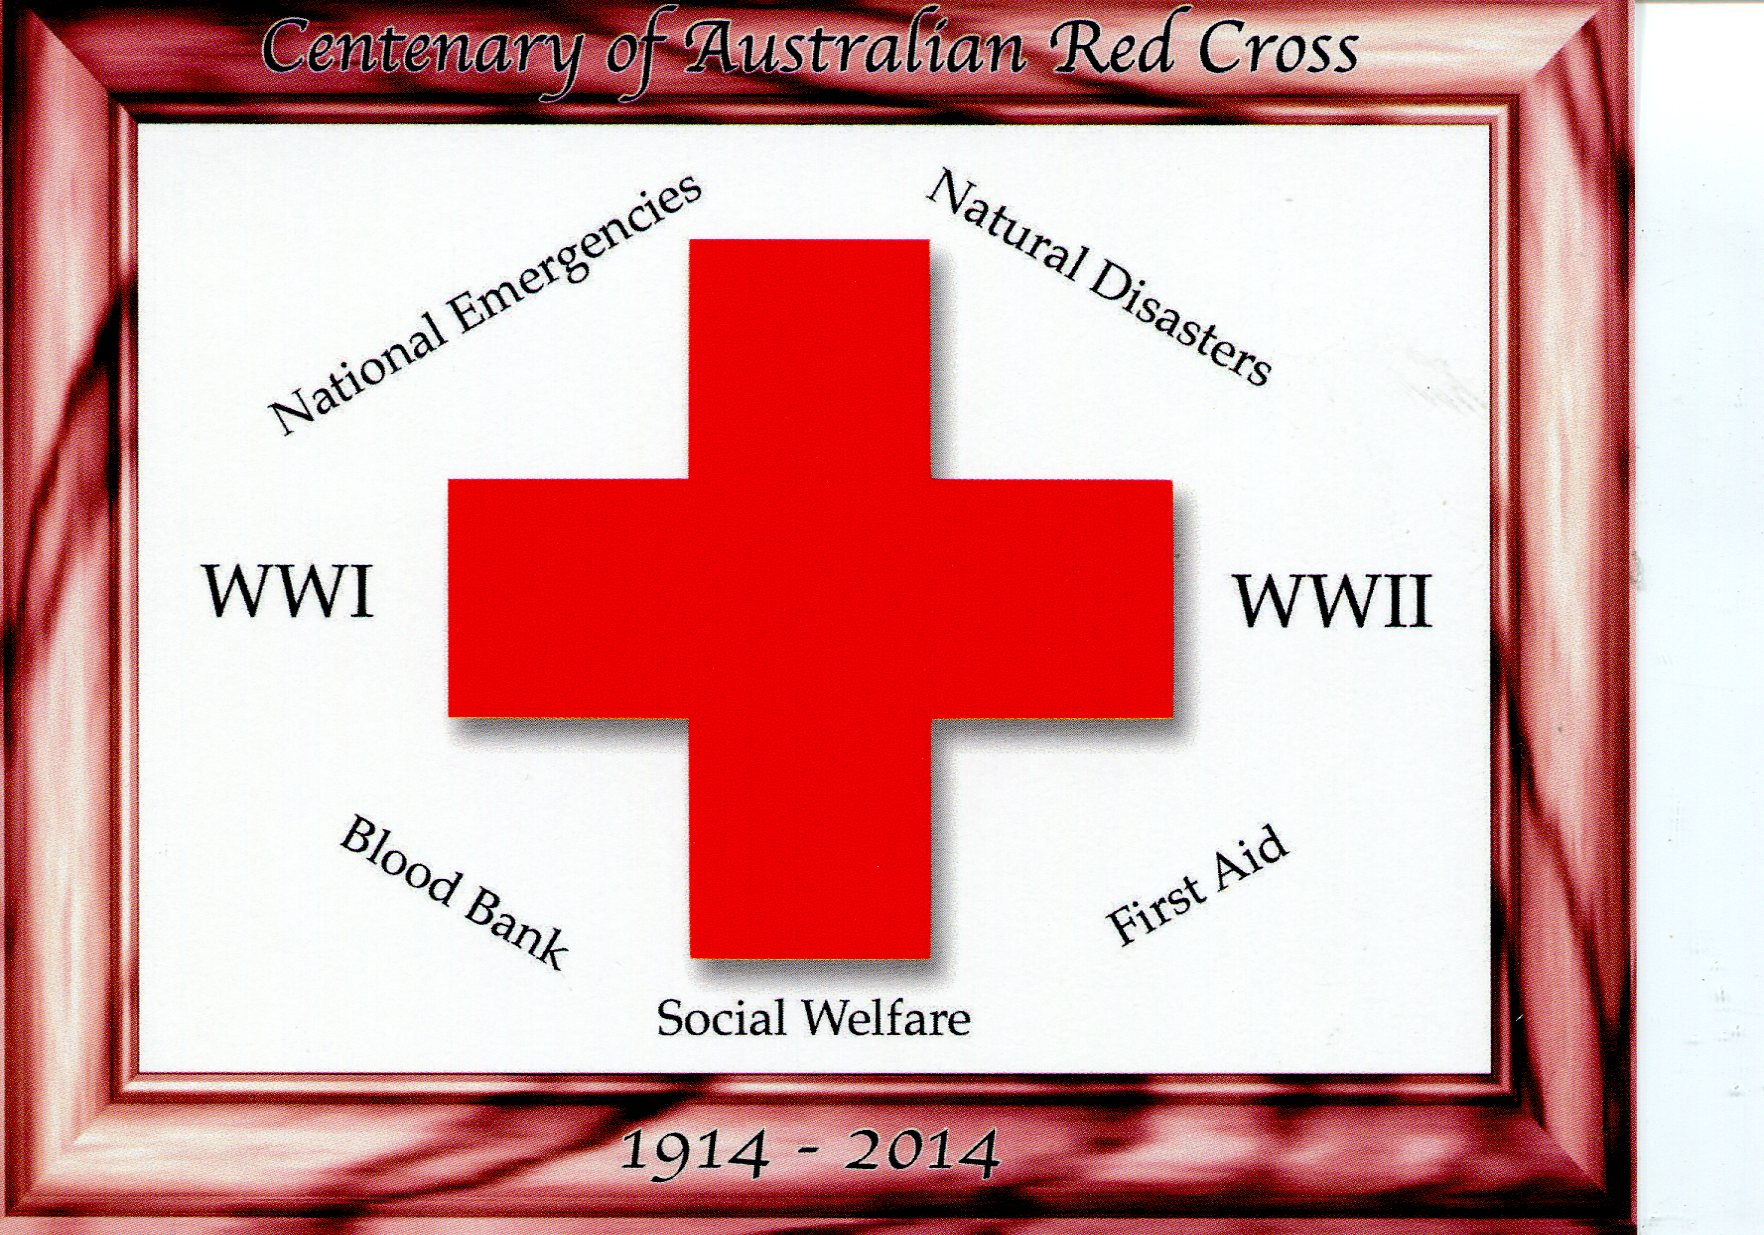 Centenary of Australian Red Cross